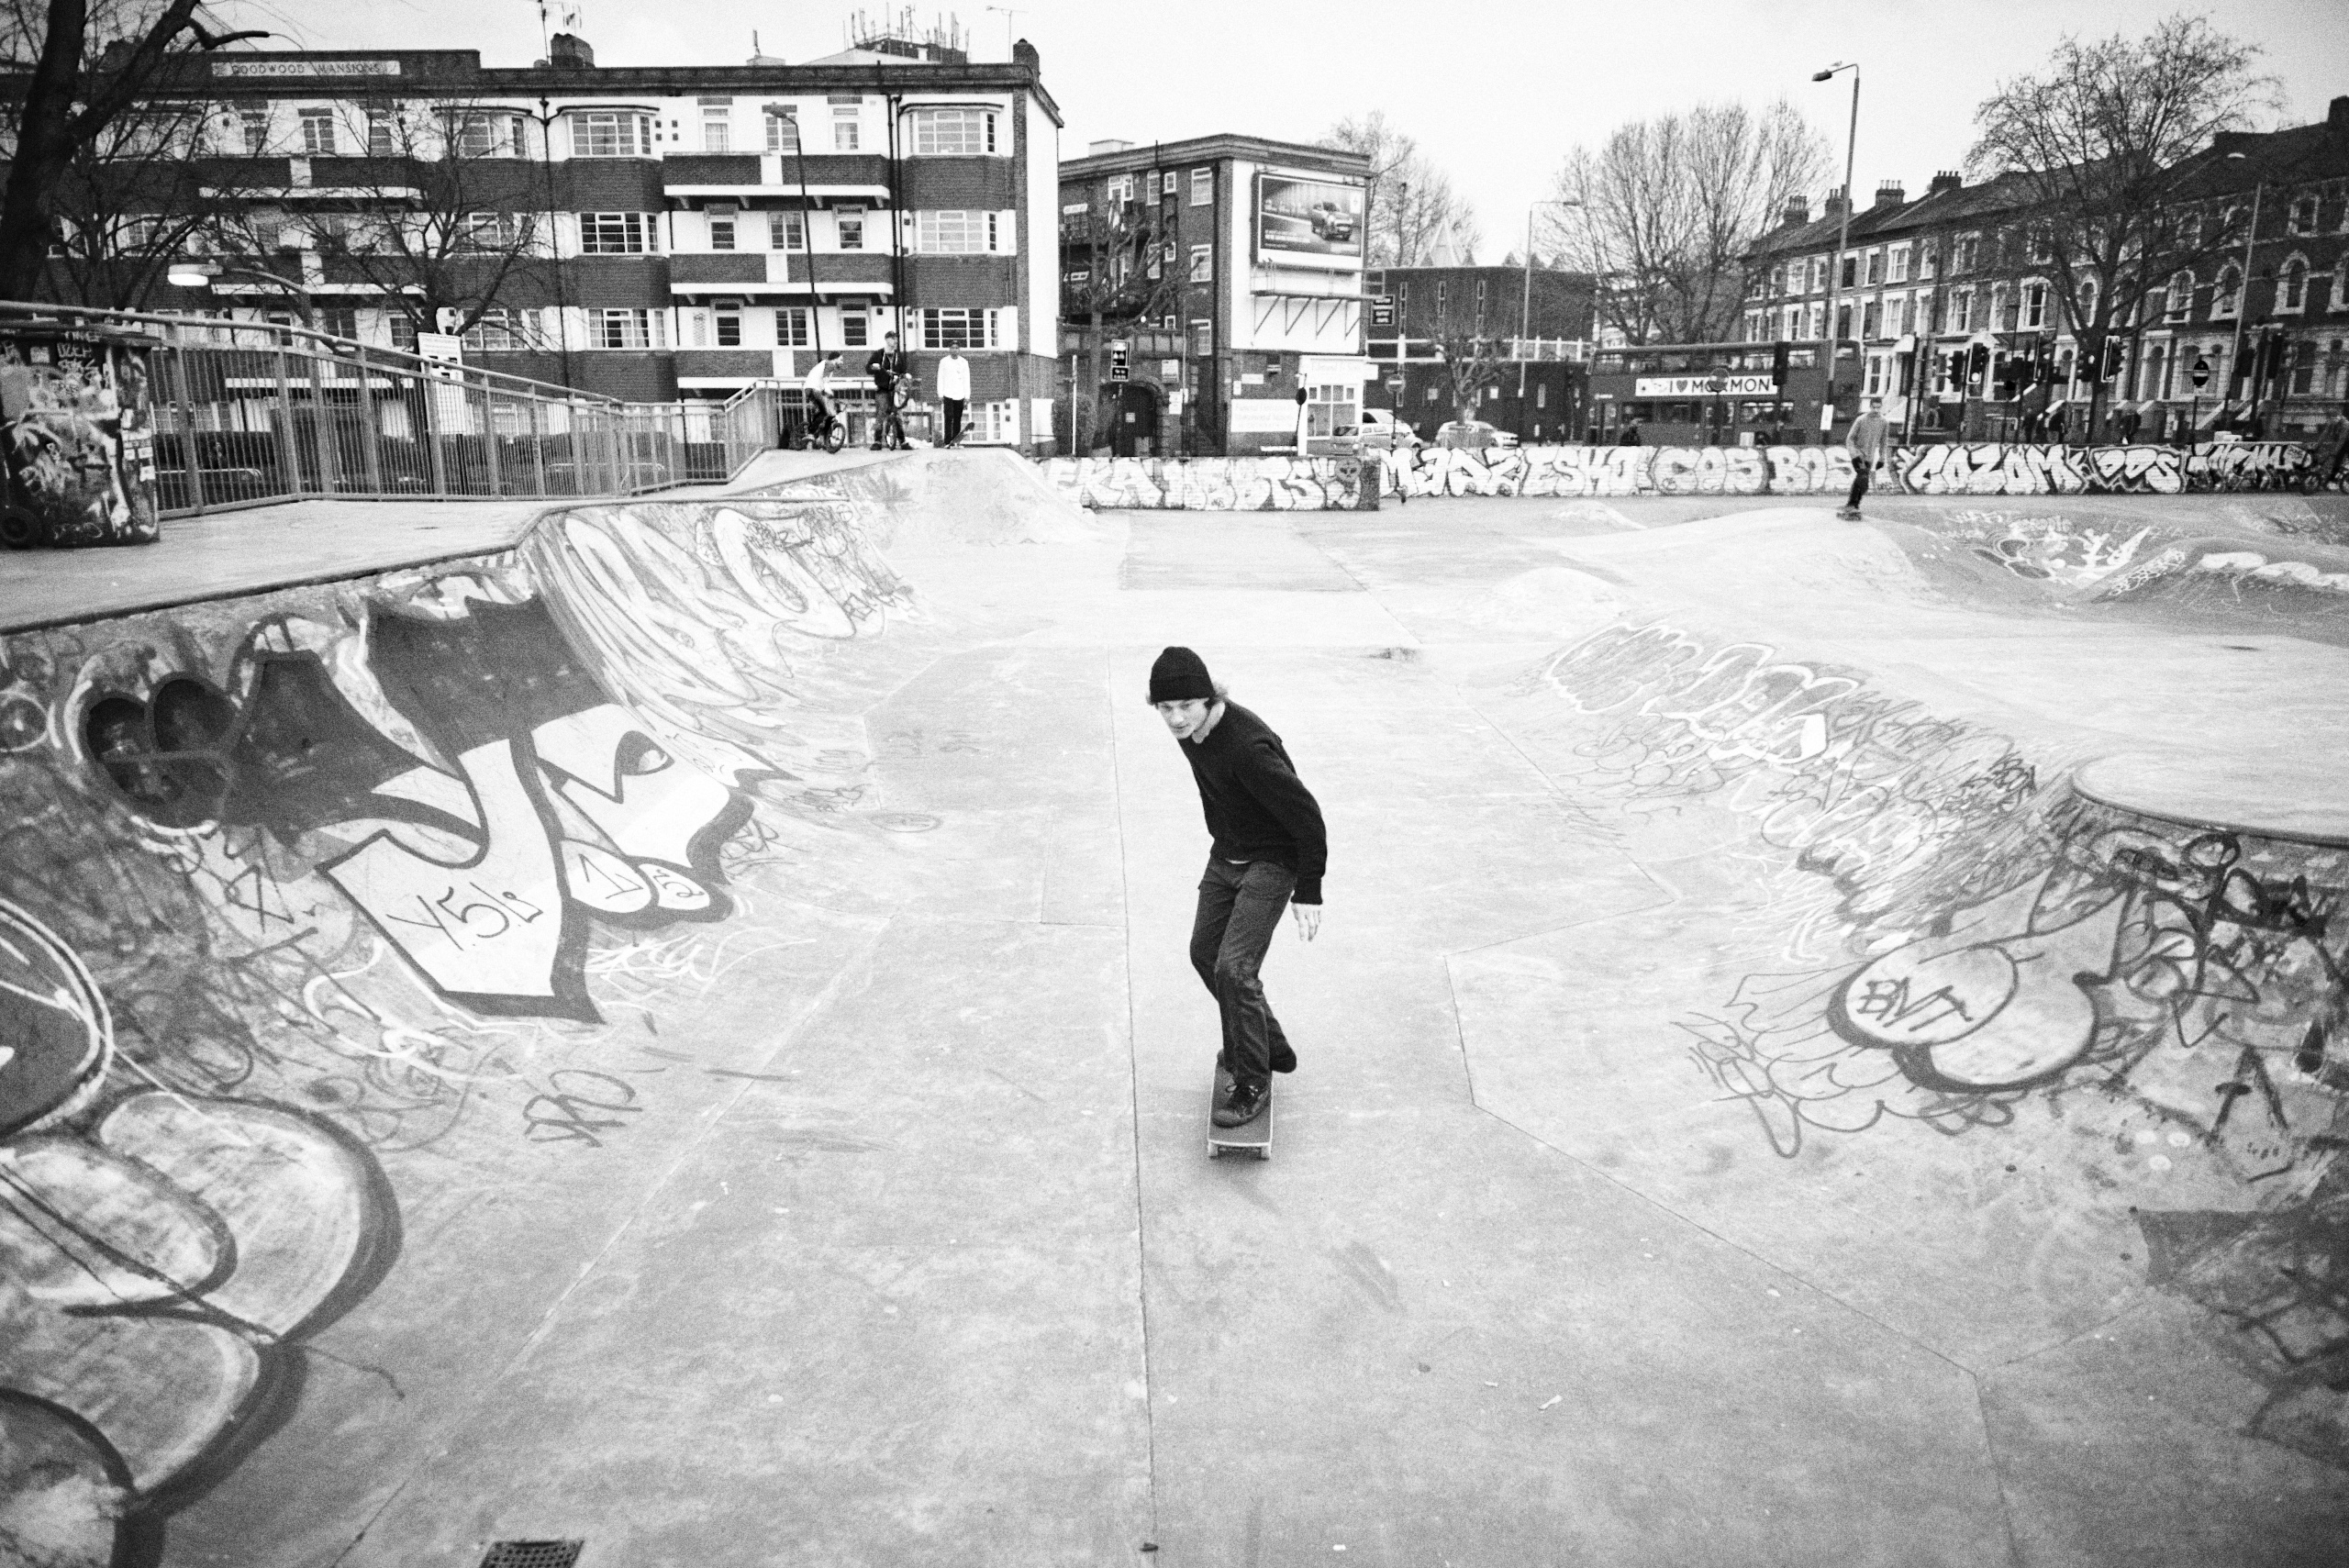 Brixton-skate-park-Matt-Stansfield-Lifestyle-Youth-Culture_10